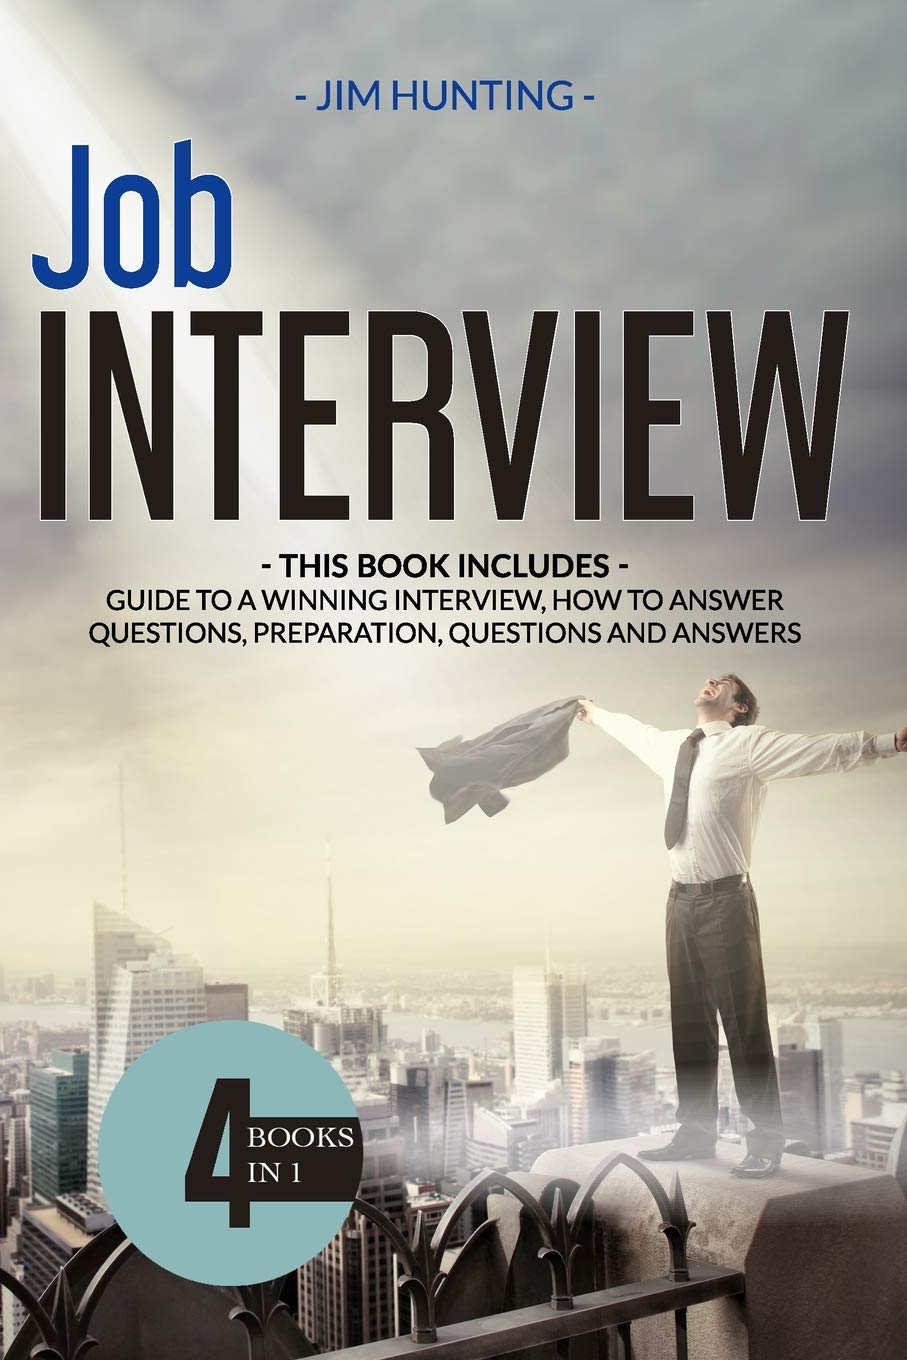 Image for JOB INTERVIEW: THIS BOOK INCLUDES: Guide to a Winning Interview, How to Answer Questions, Preparation, Questions and Answers